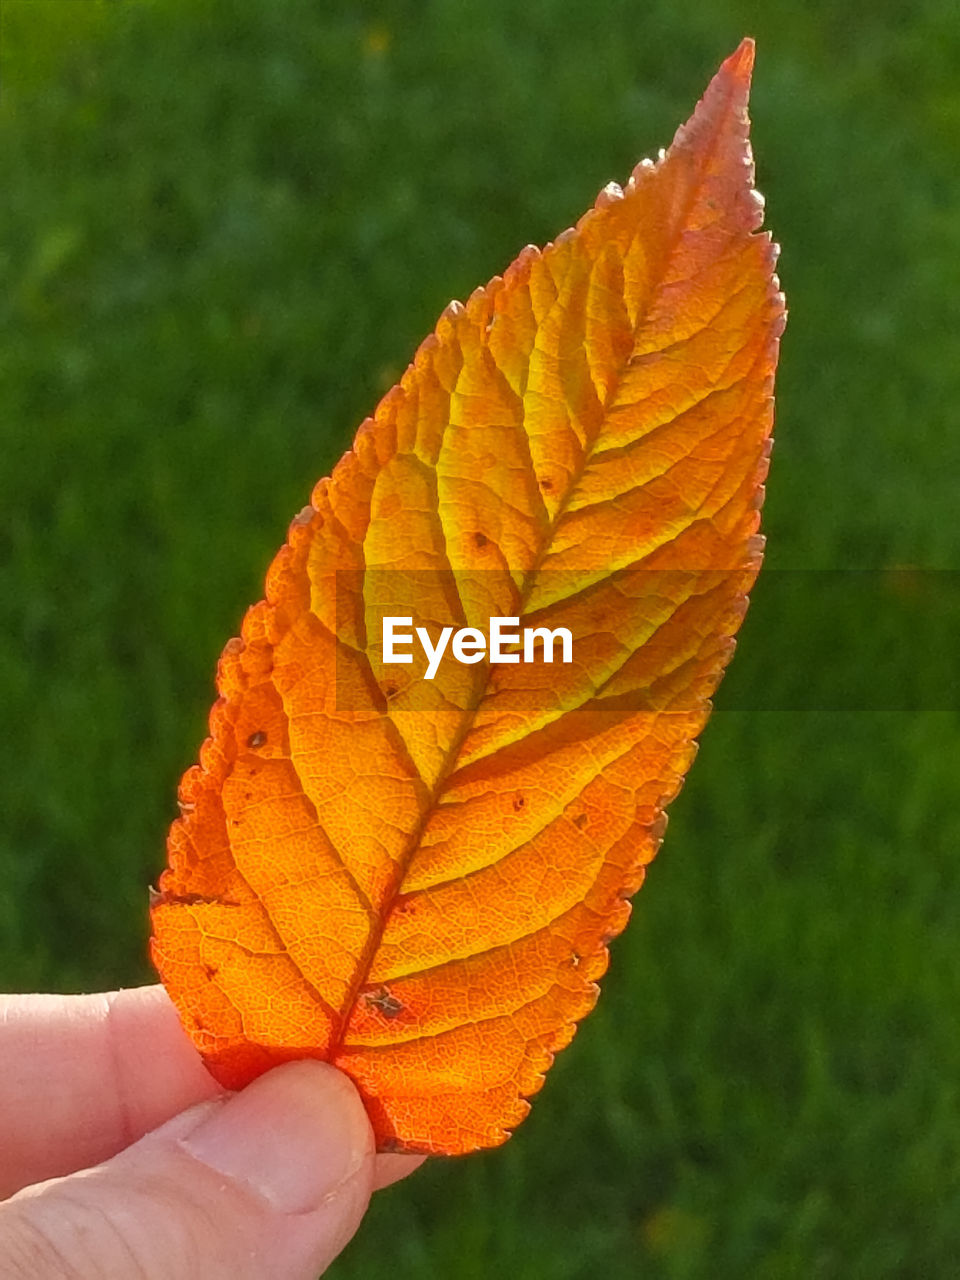 CLOSE-UP OF HAND HOLDING MAPLE LEAF ON LEAVES